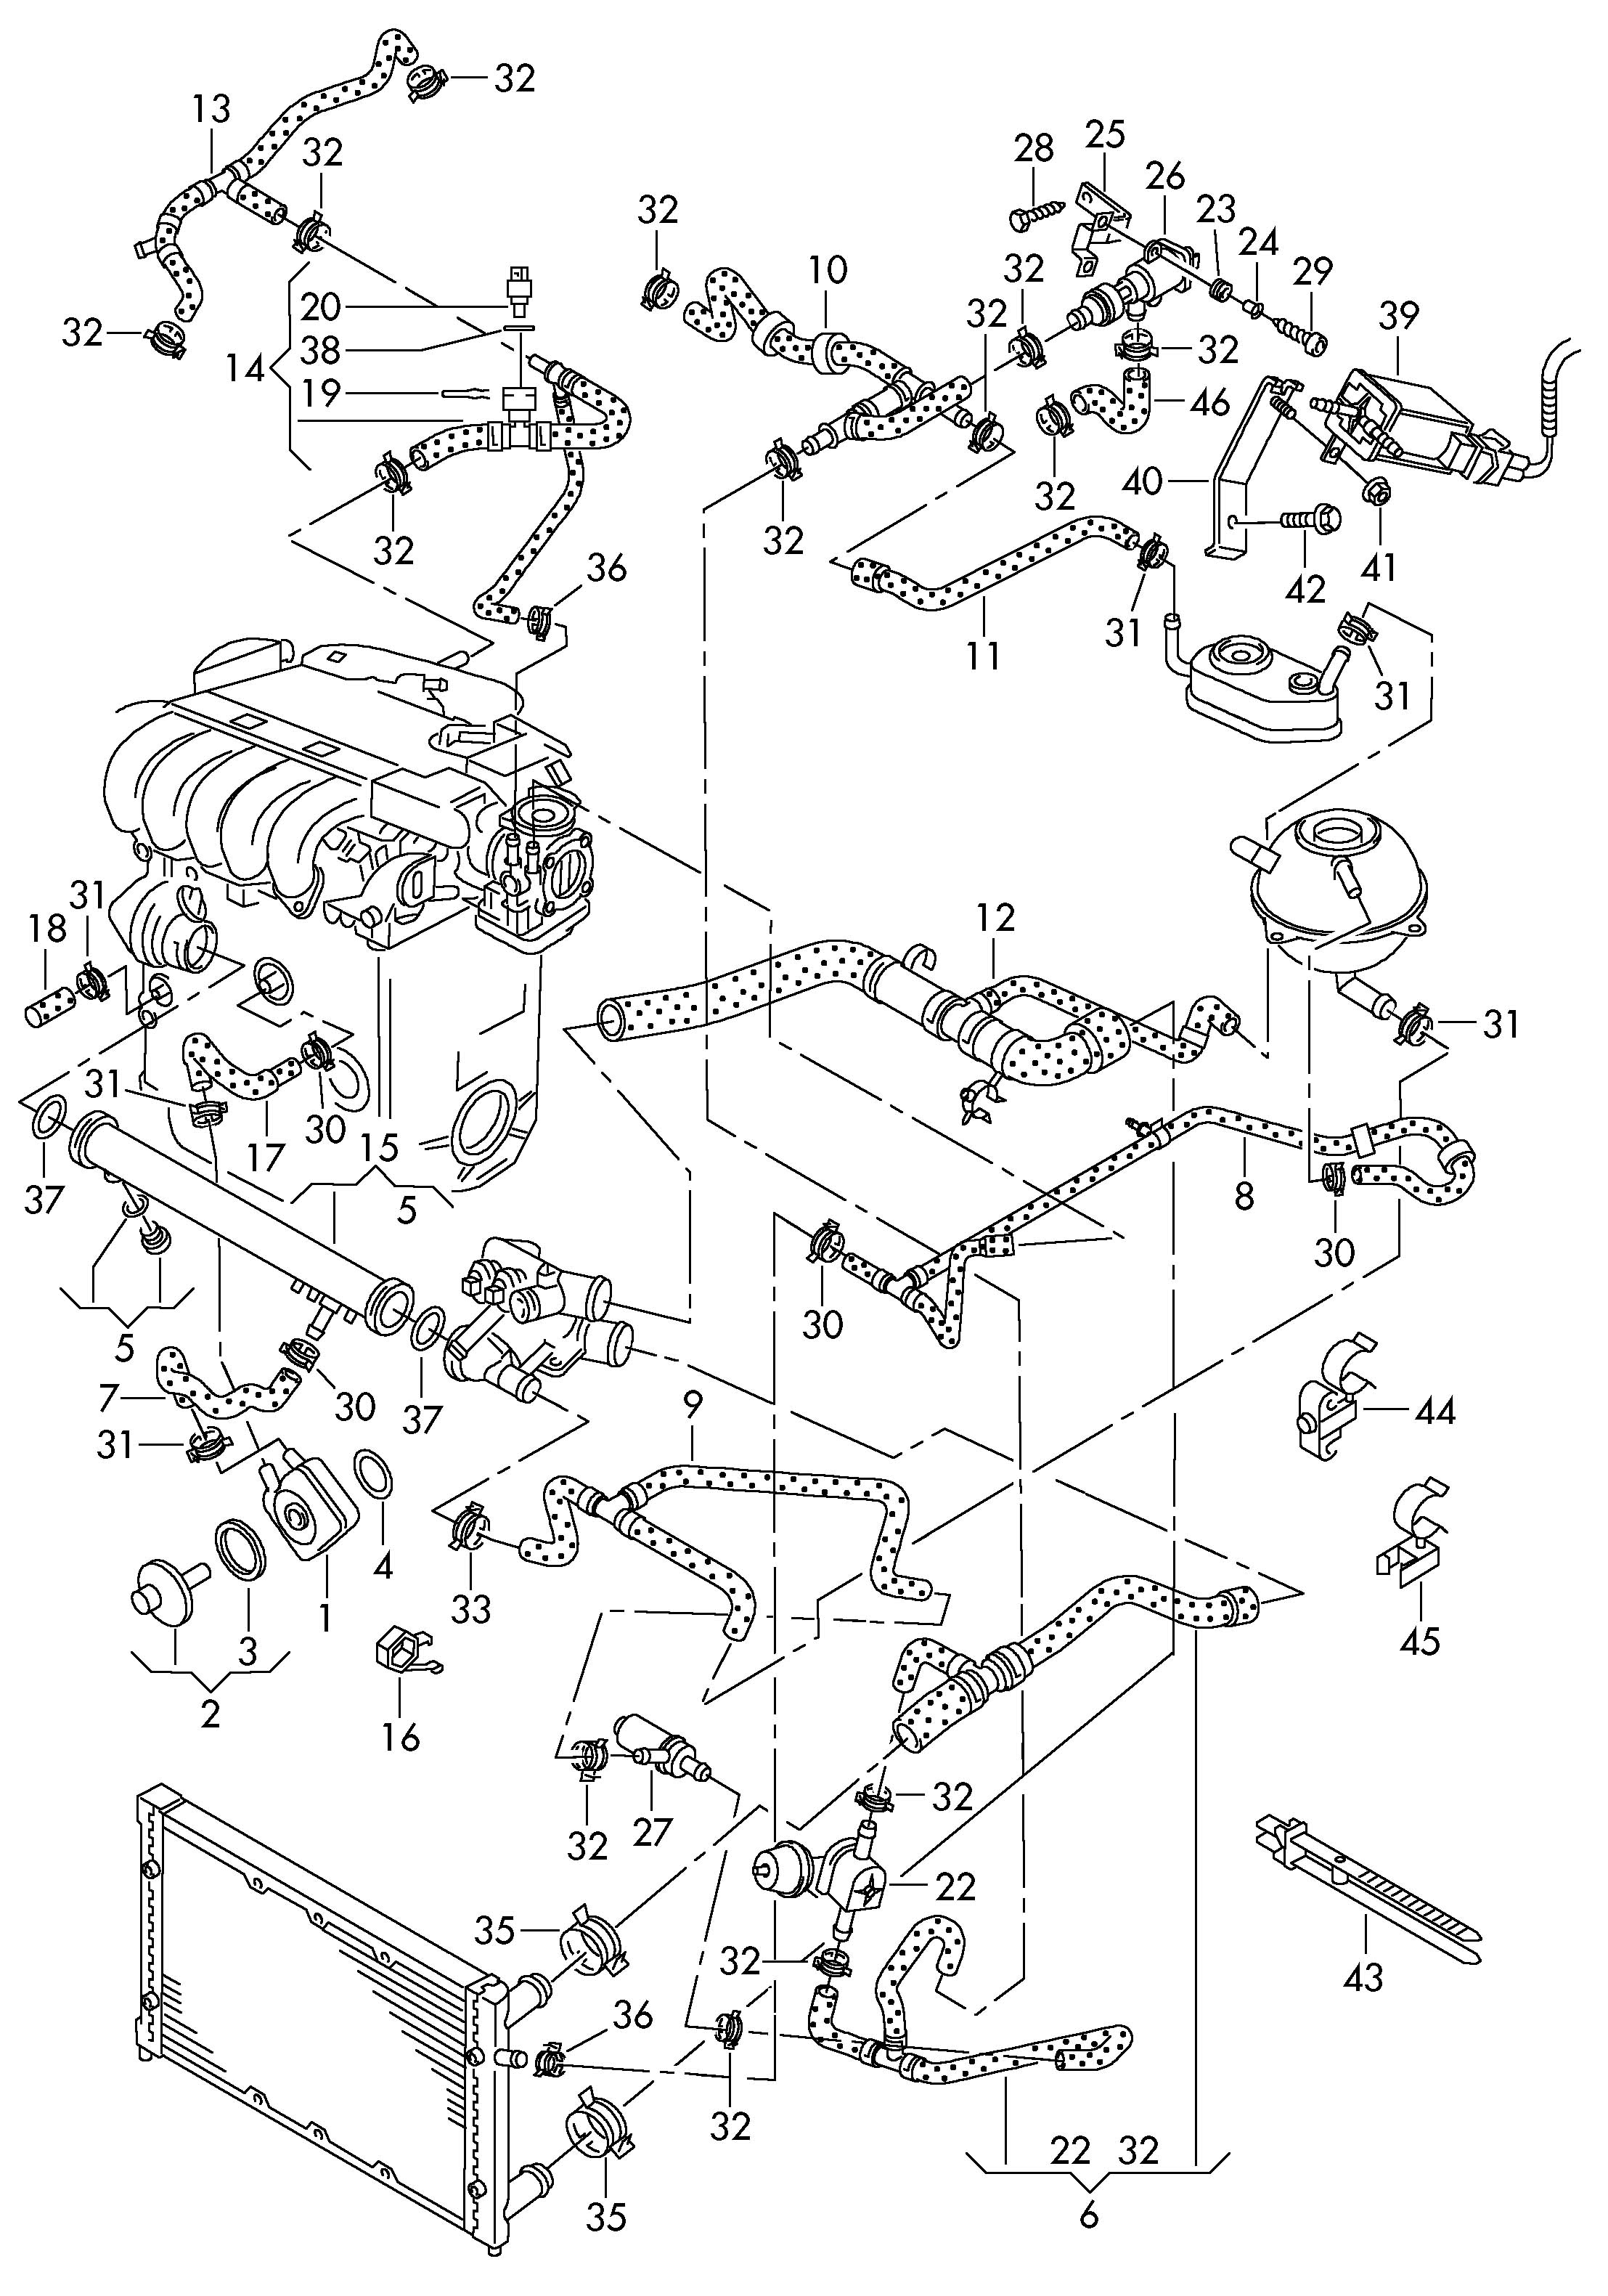 Wiring Diagram 93 Eurovan Westfalia